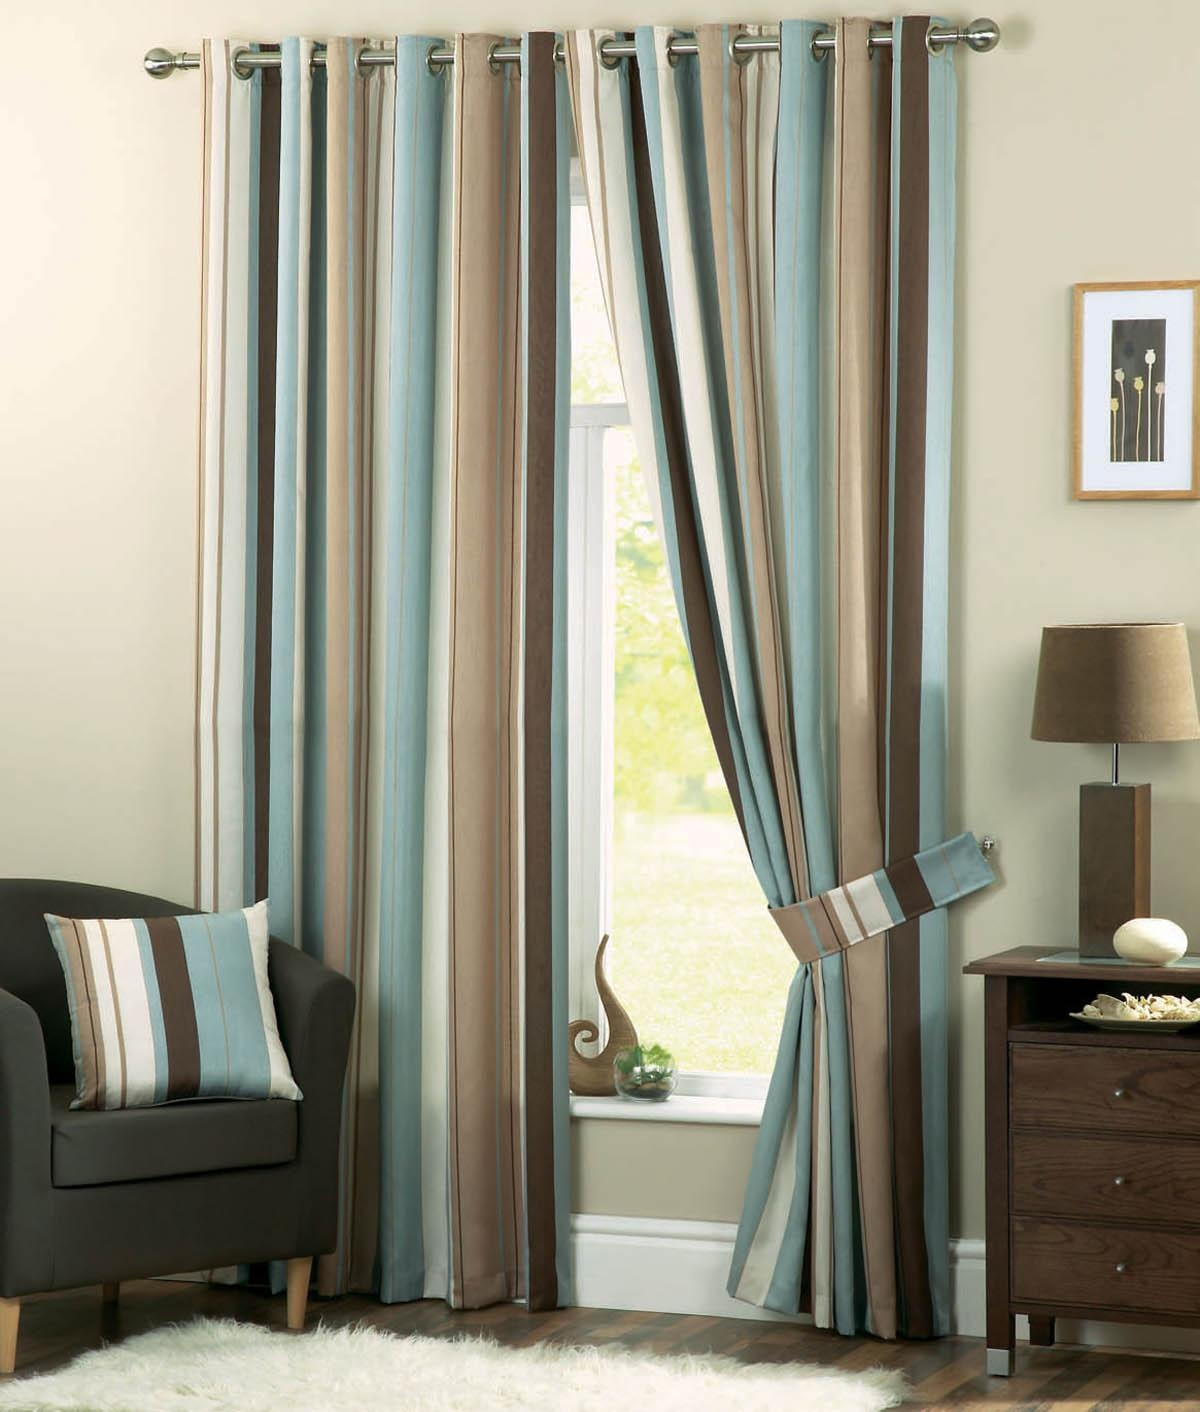 Whitworth Eyelet Curtains Duckegg Free Uk Delivery Terrys Fabrics With Brown Eyelet Curtains (Image 24 of 25)